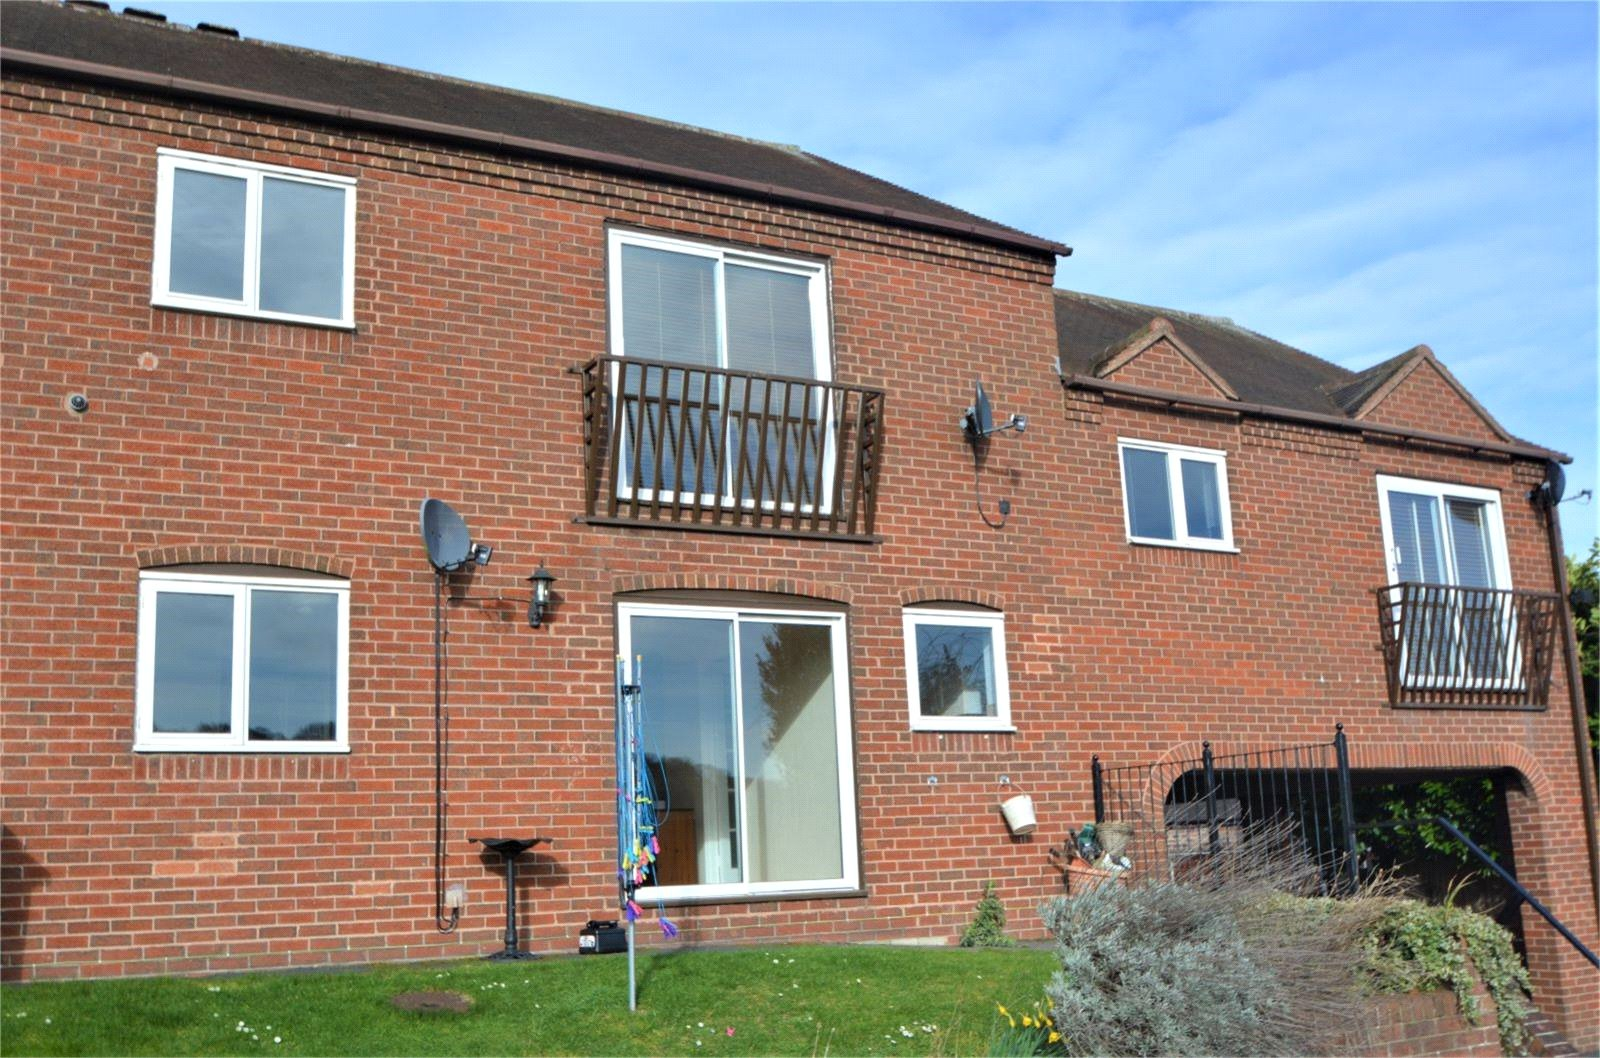 2 Bedrooms Flat Share for rent in 4 Dove Court, Ironbridge, Shropshire, TF8